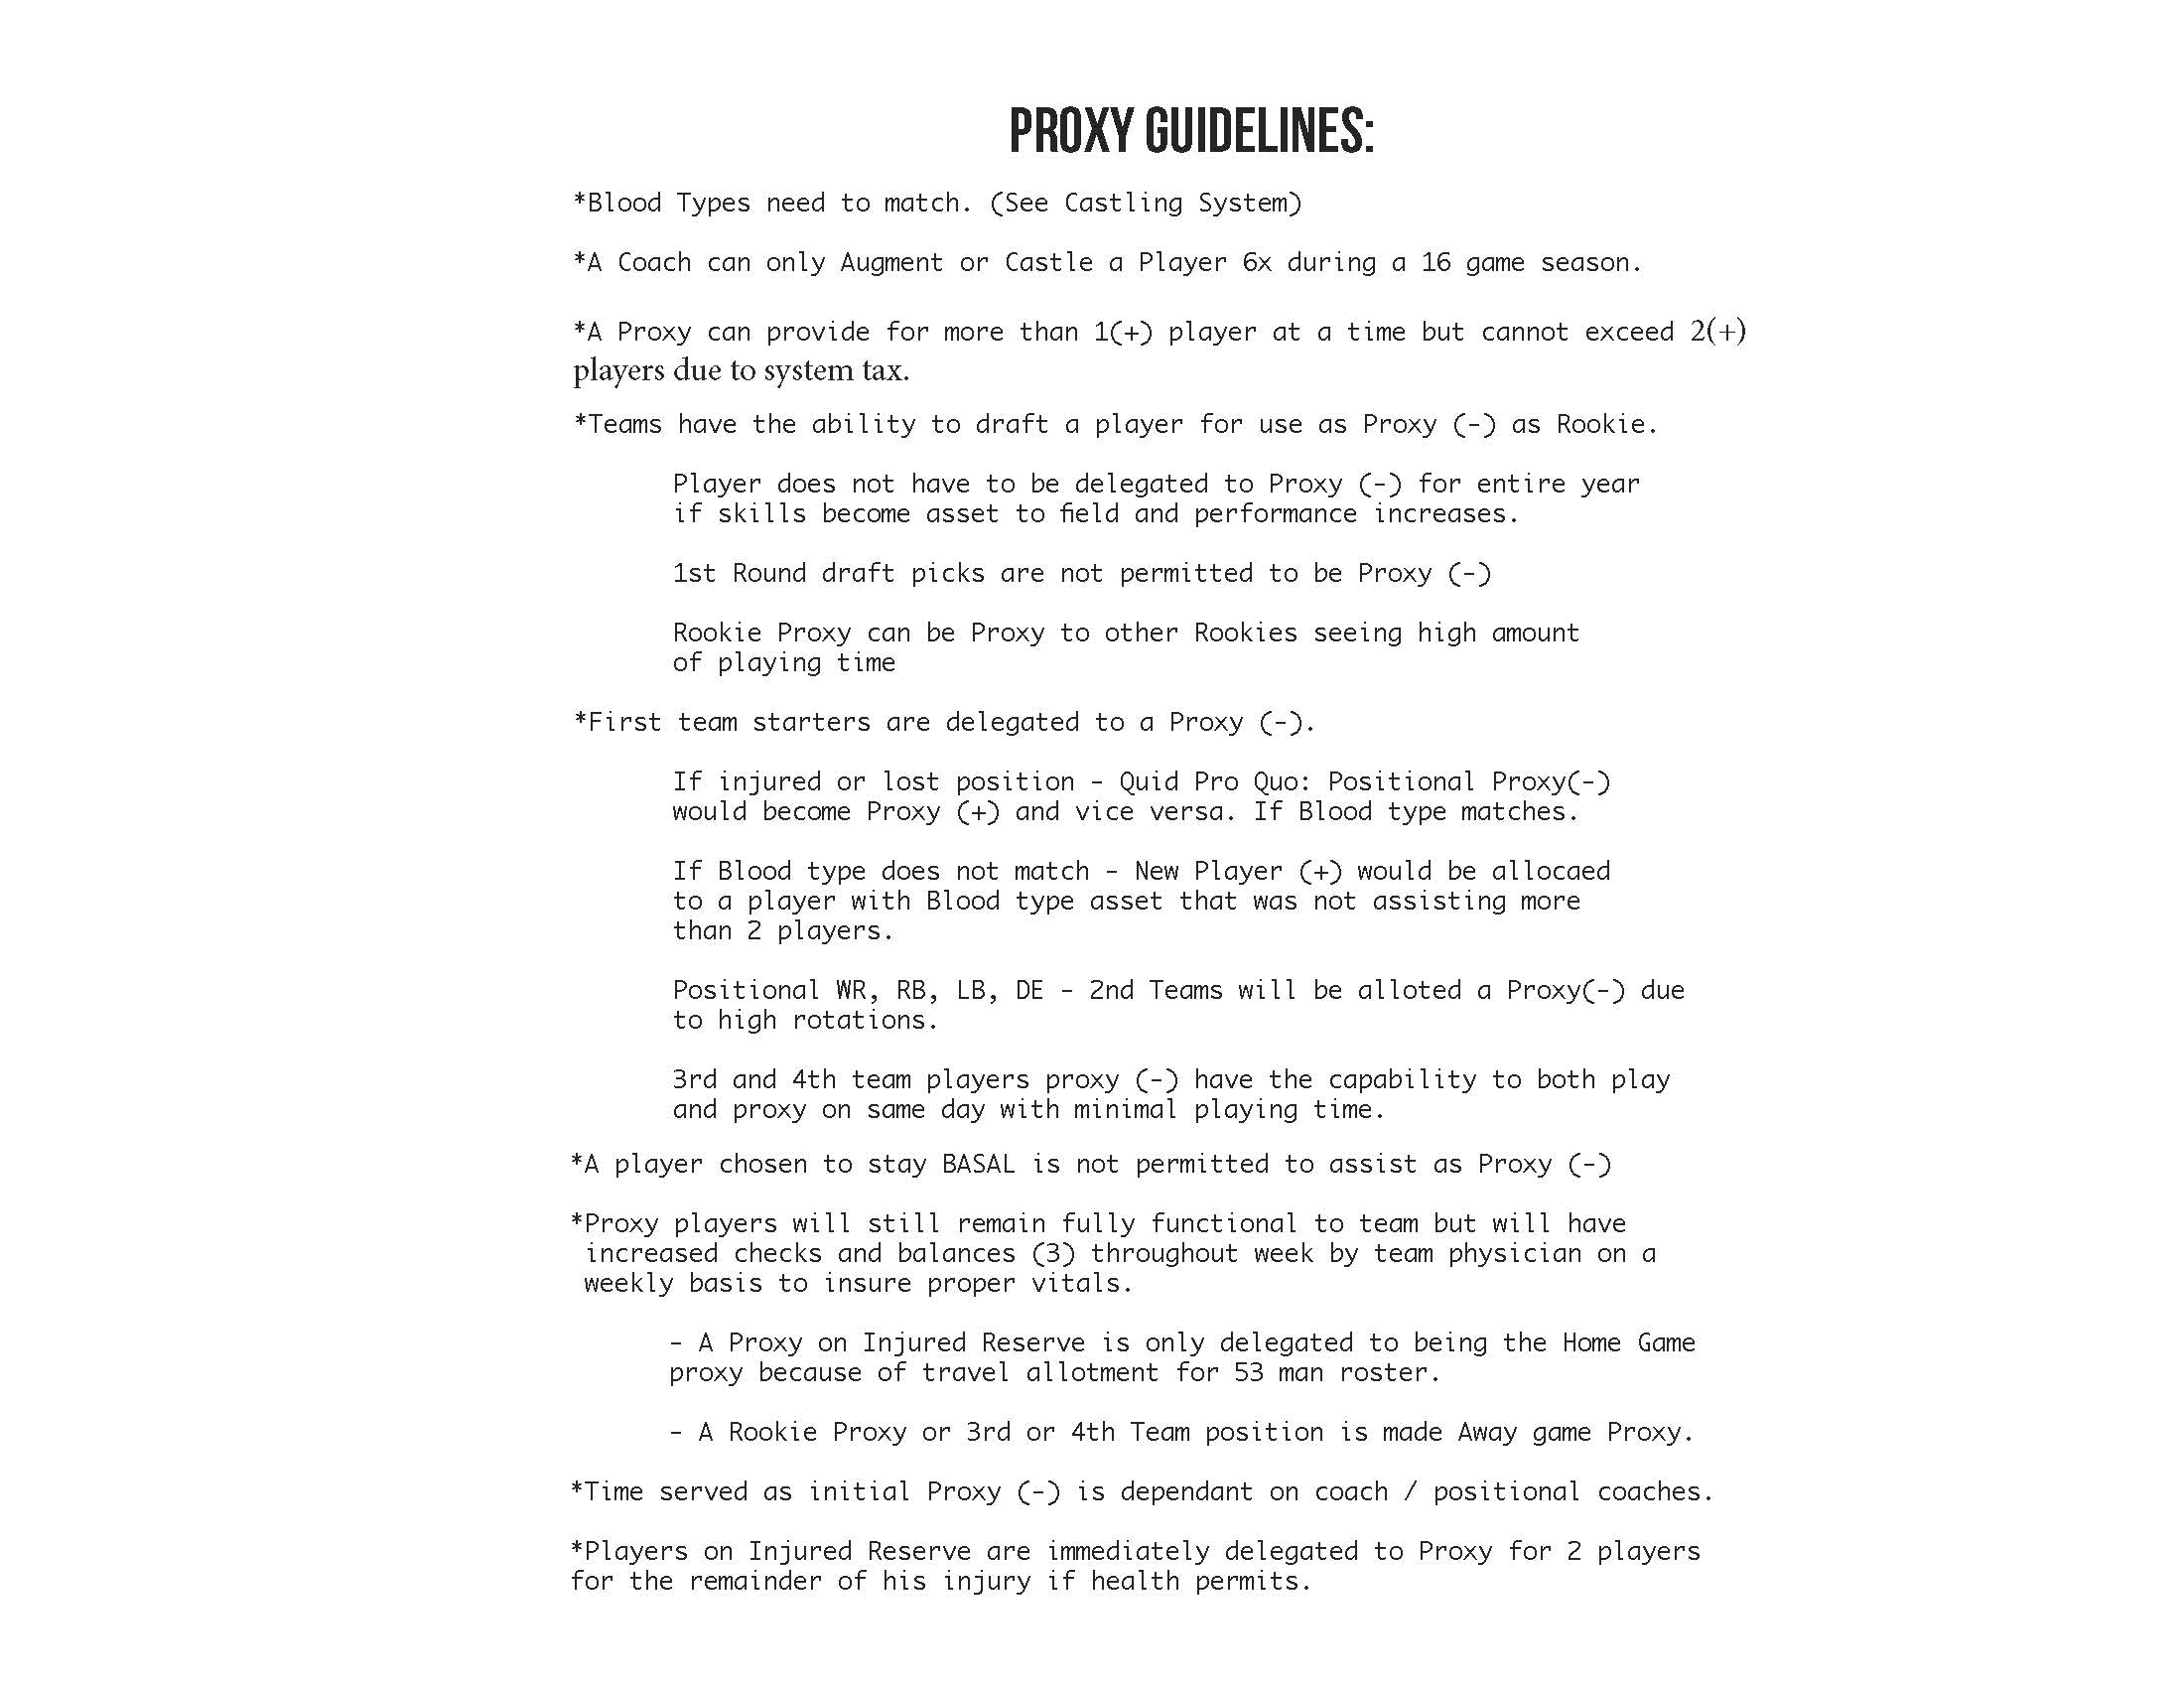 Guidelines to becoming a Proxy + Scoring